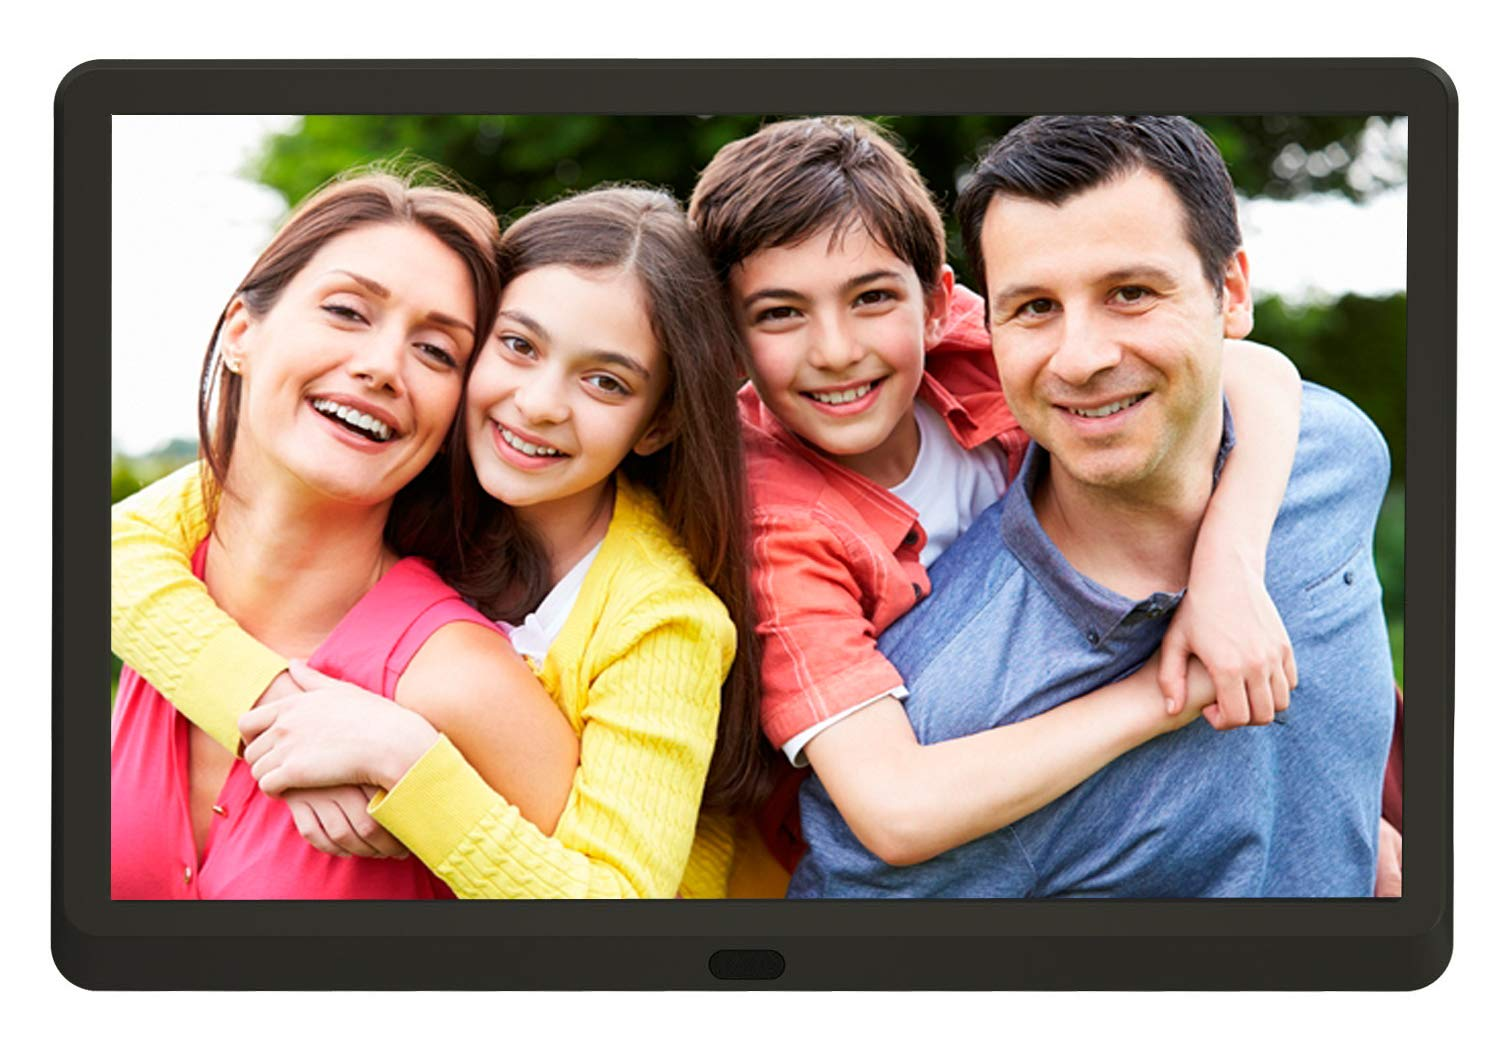 Full HD Digital Picture Frame 1920X1080 Resolution Display 15.6 Inches Advertising Media Player with Timer Switch Function and Remote Control